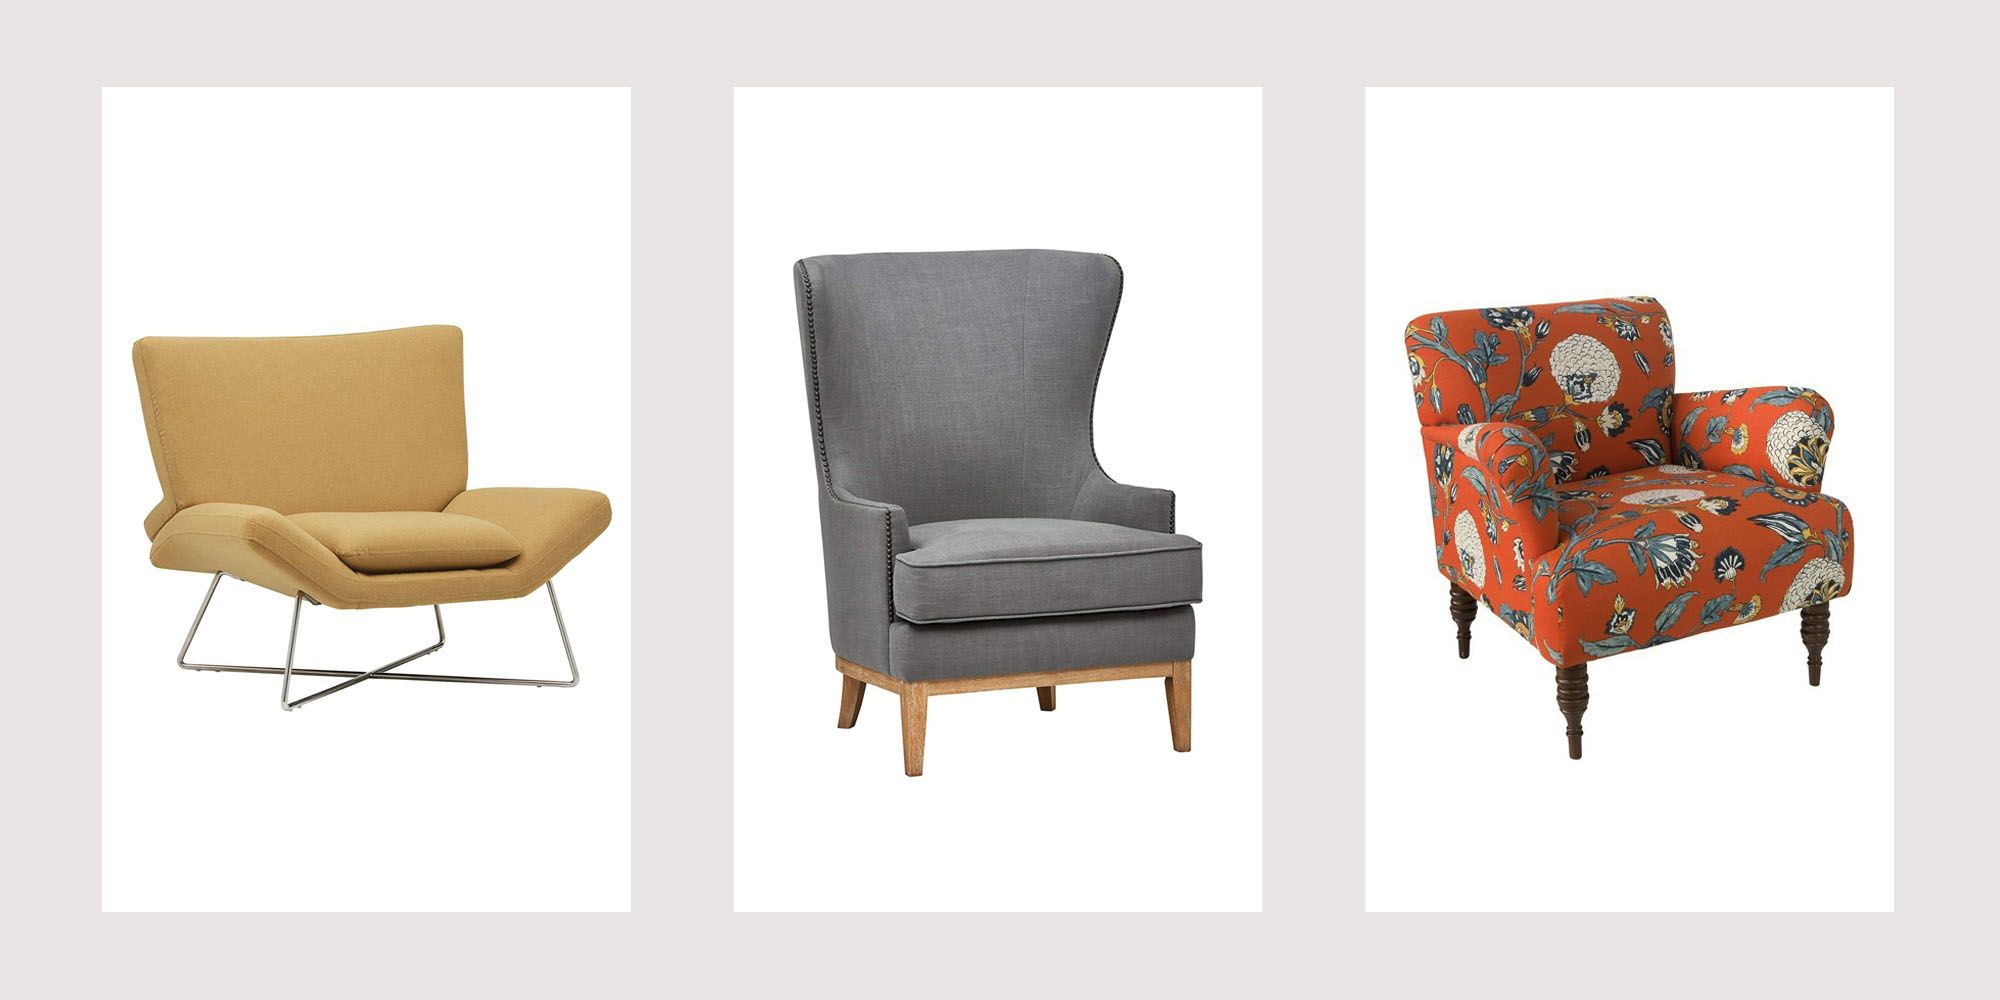 image & 20 Best Reading Chairs - Oversized Chairs For Reading